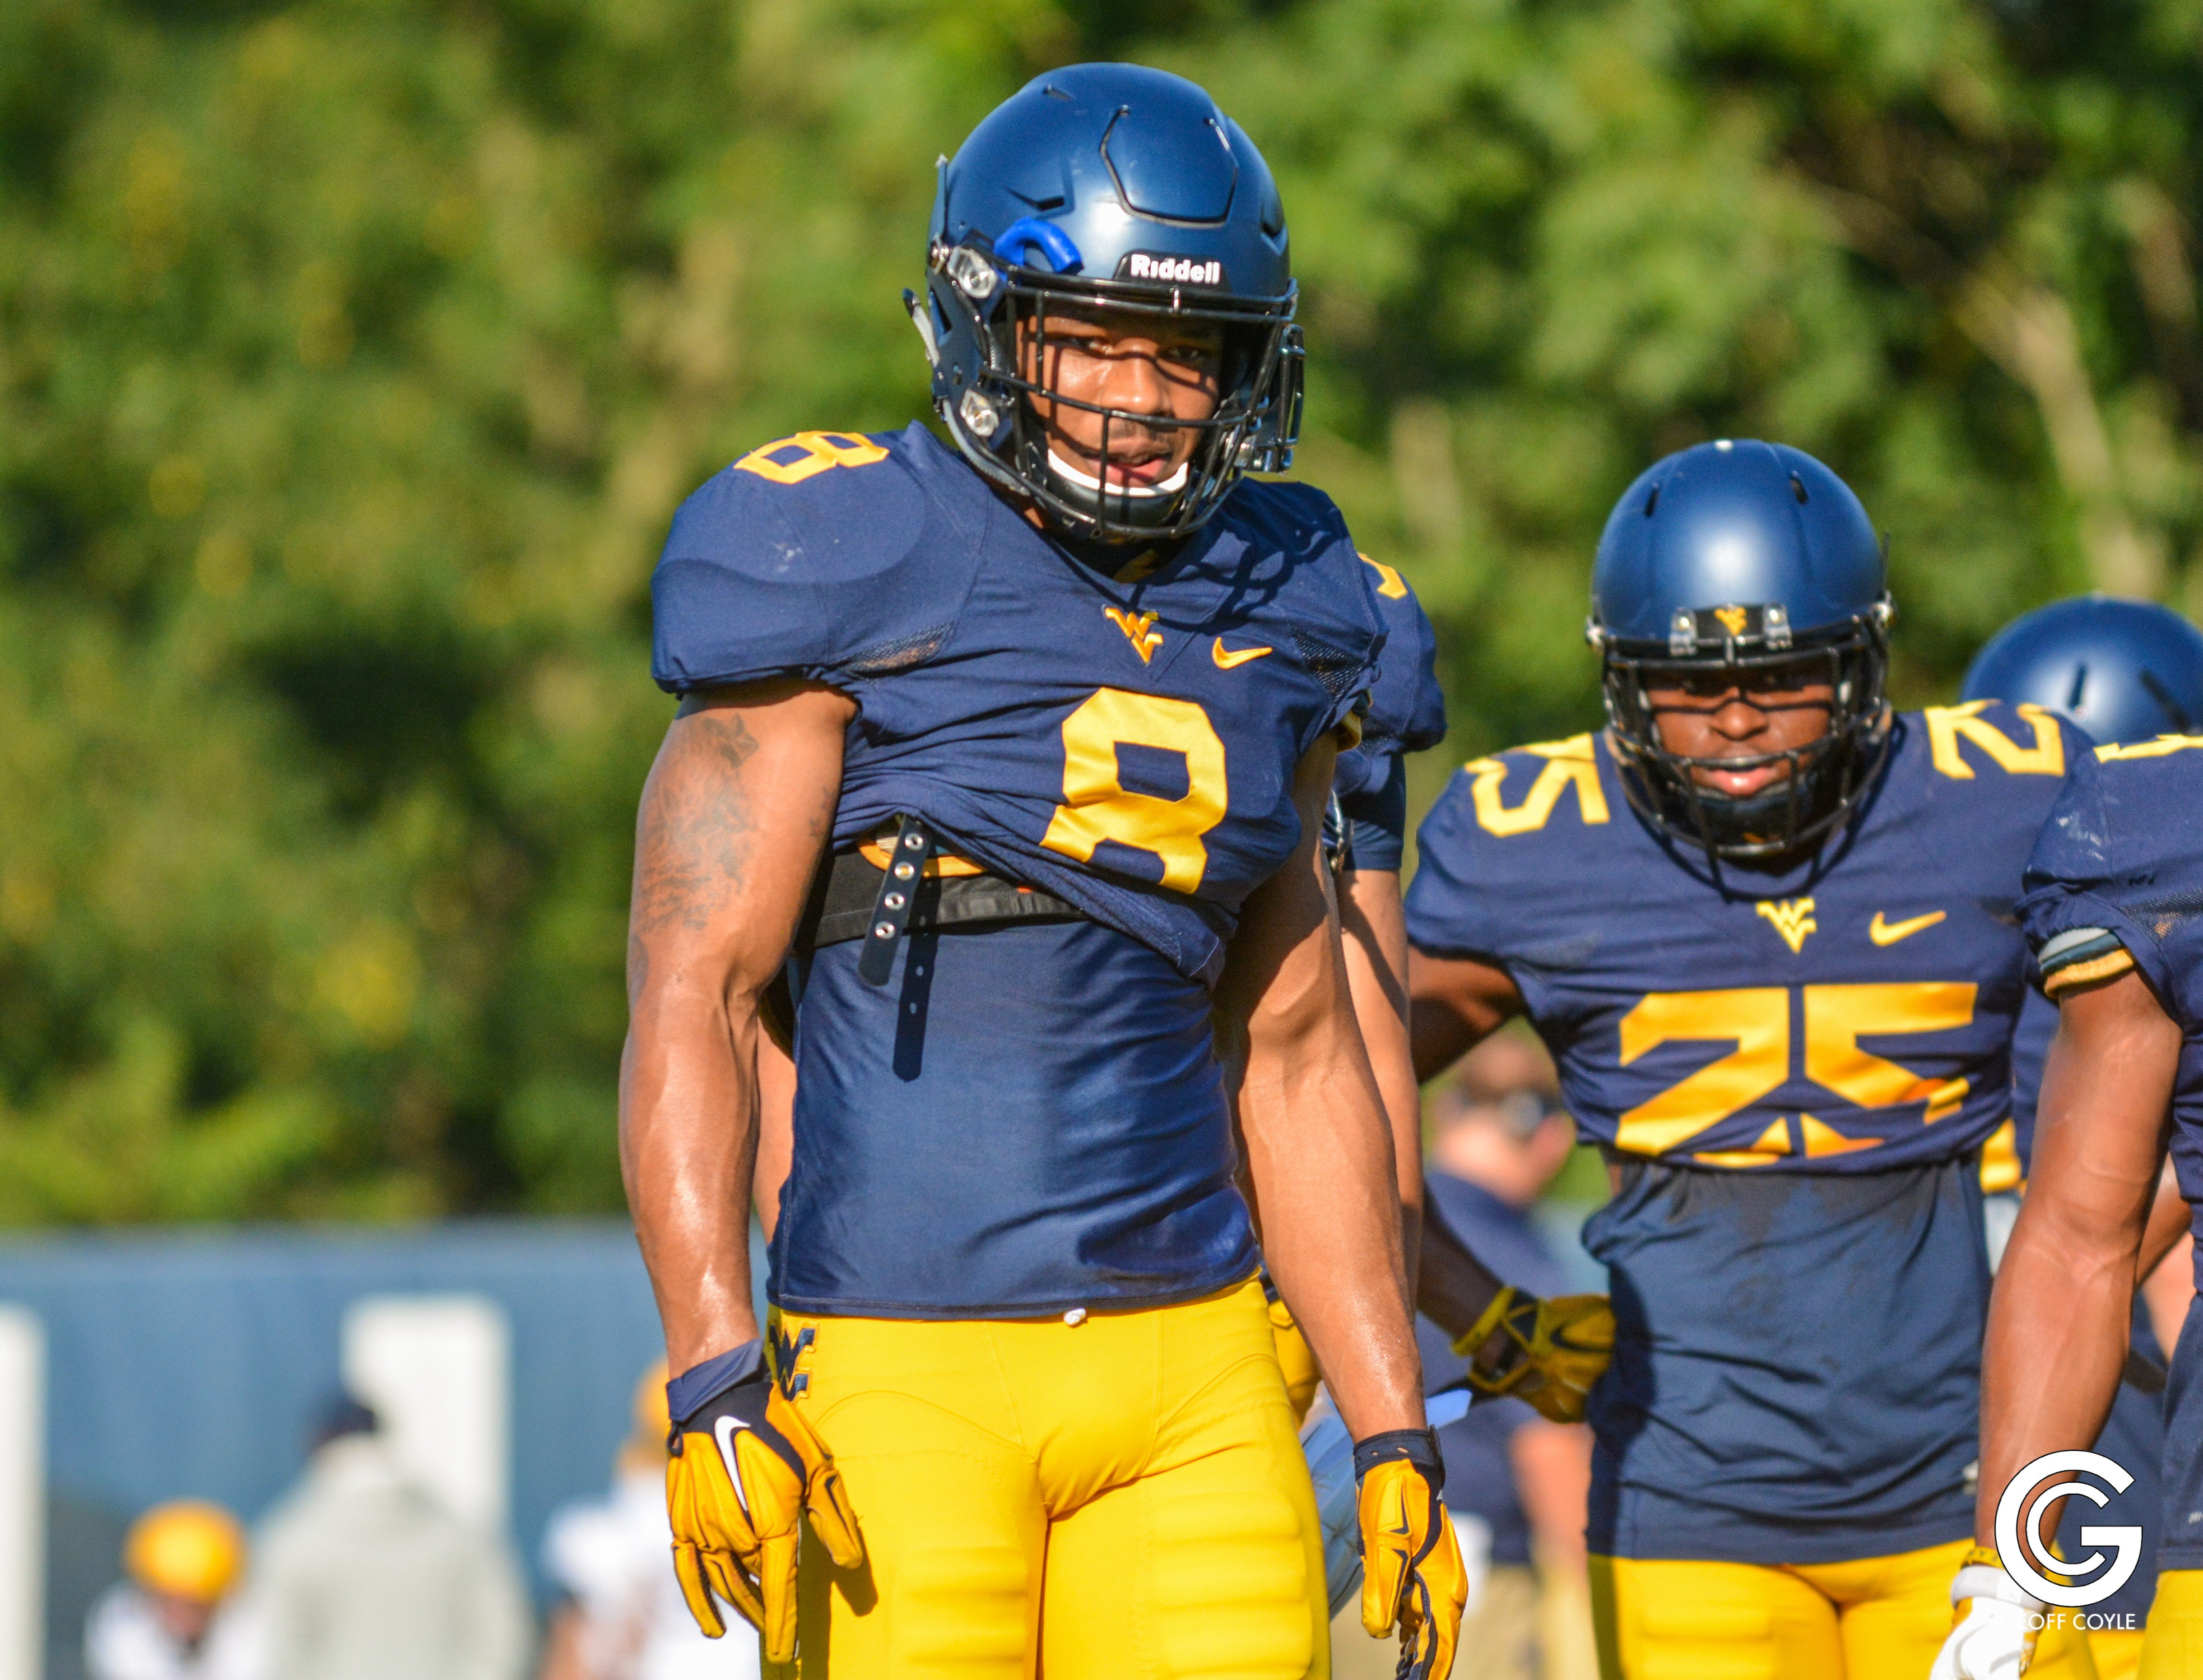 WVU safety Kyzir White looks on during the final camp of his Mountaineer career. (PHOTO: Geoff Coyle)